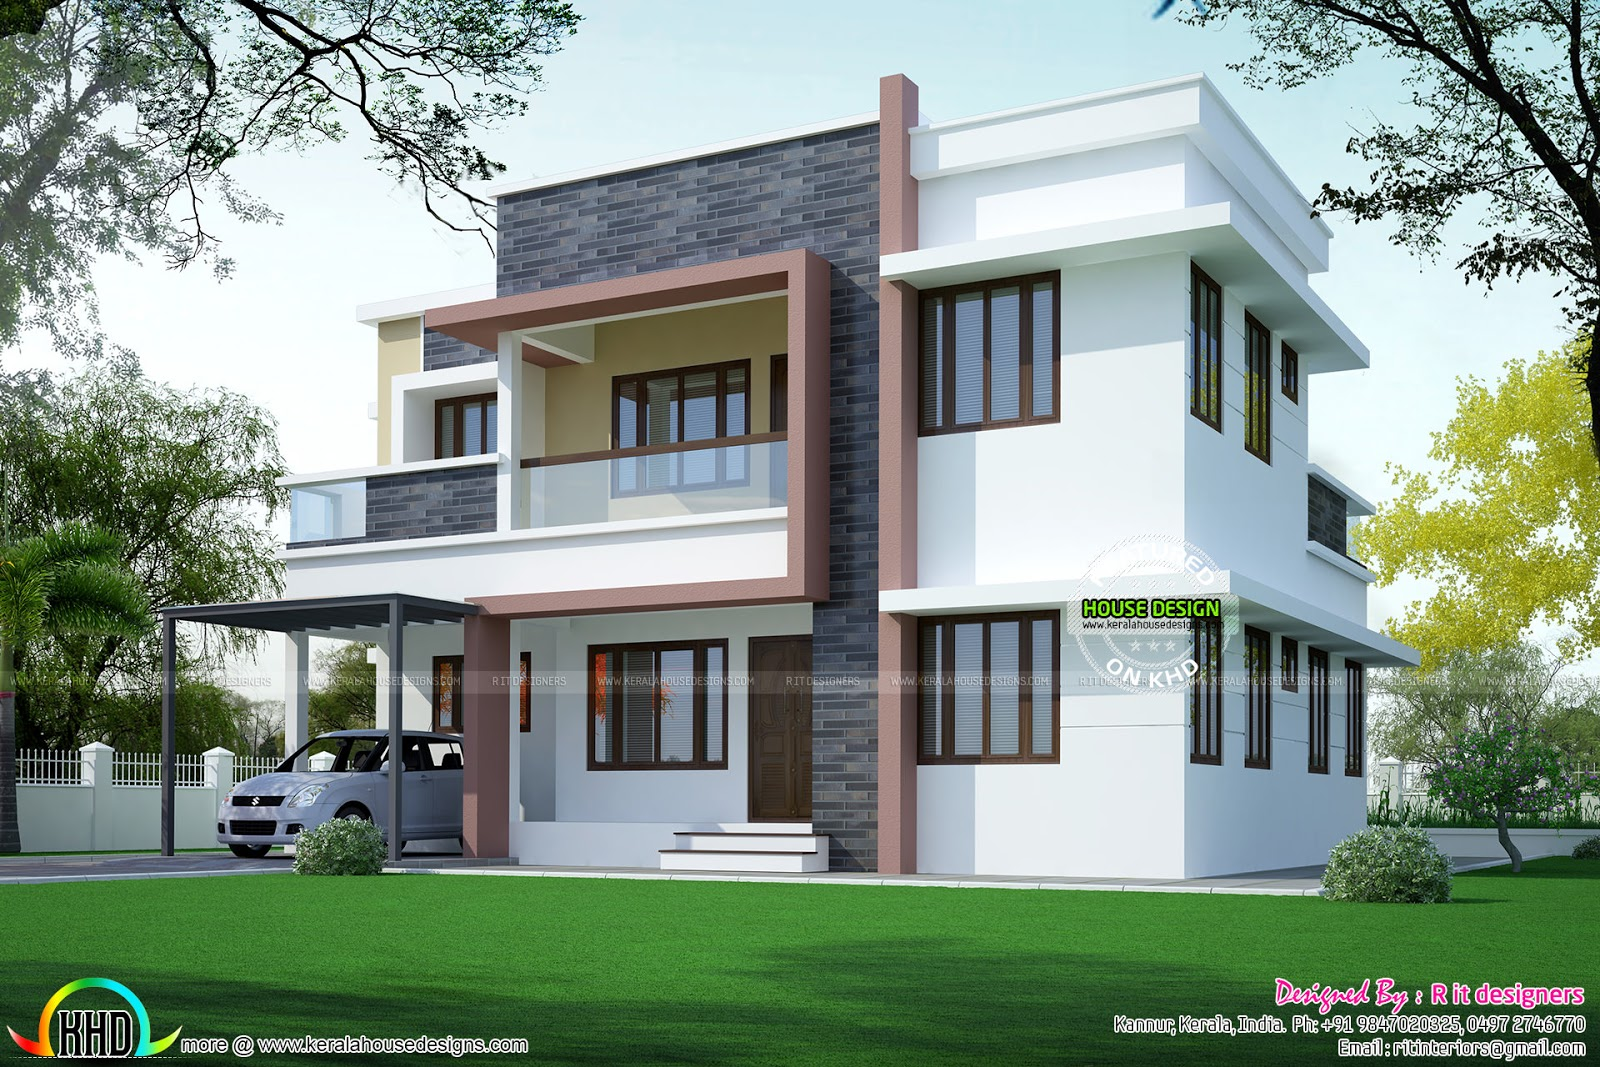 Simple home plan in modern style kerala home design and for Simple modern home plans